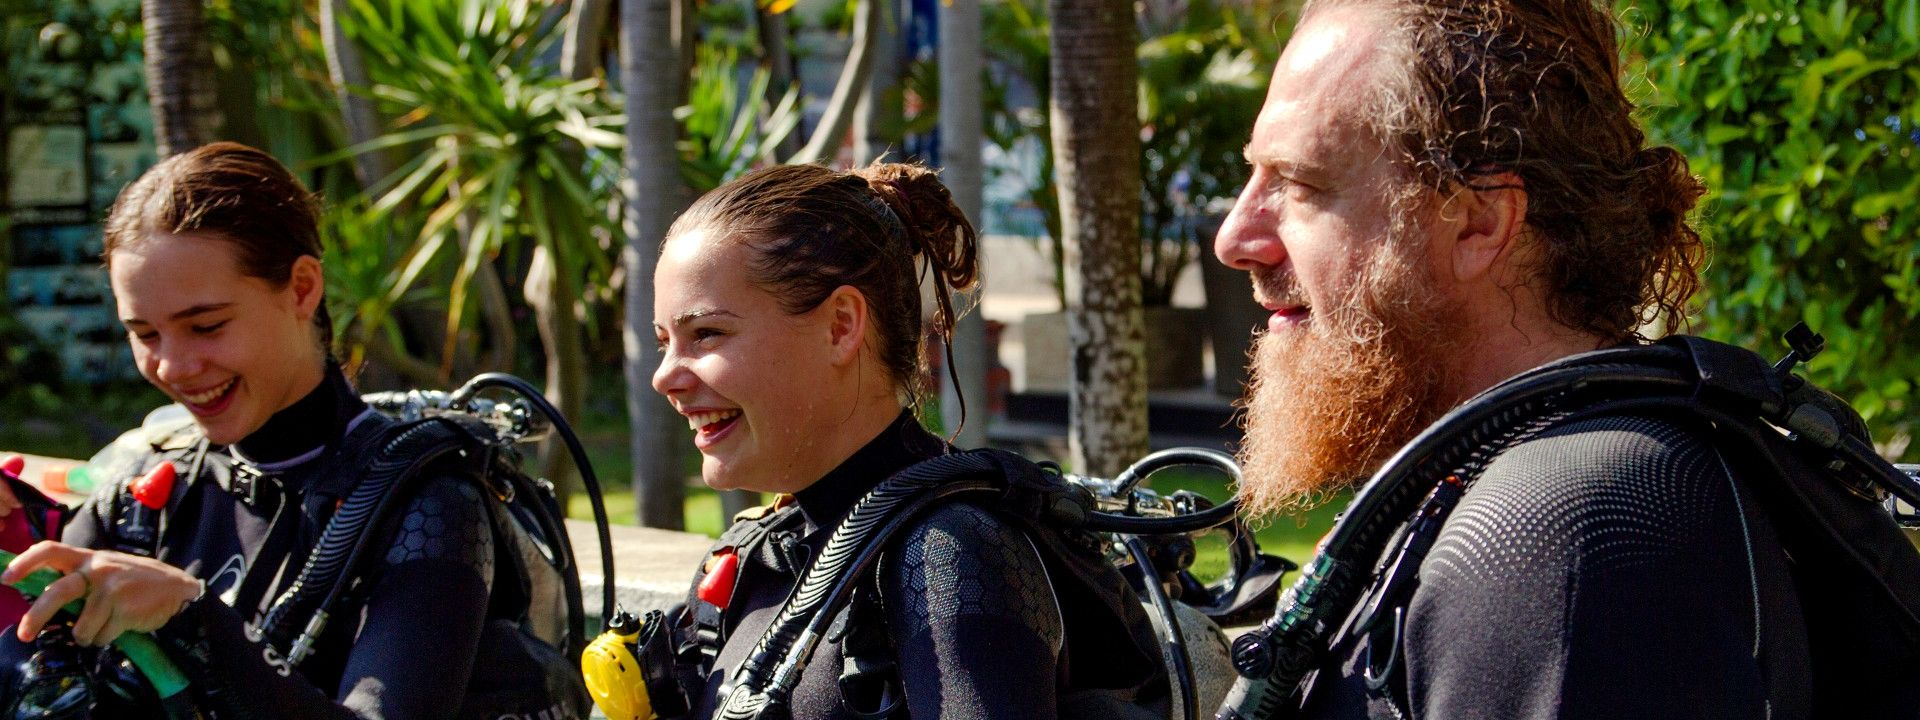 HOW TO CHOOSE A WETSUIT FOR SCUBA DIVING